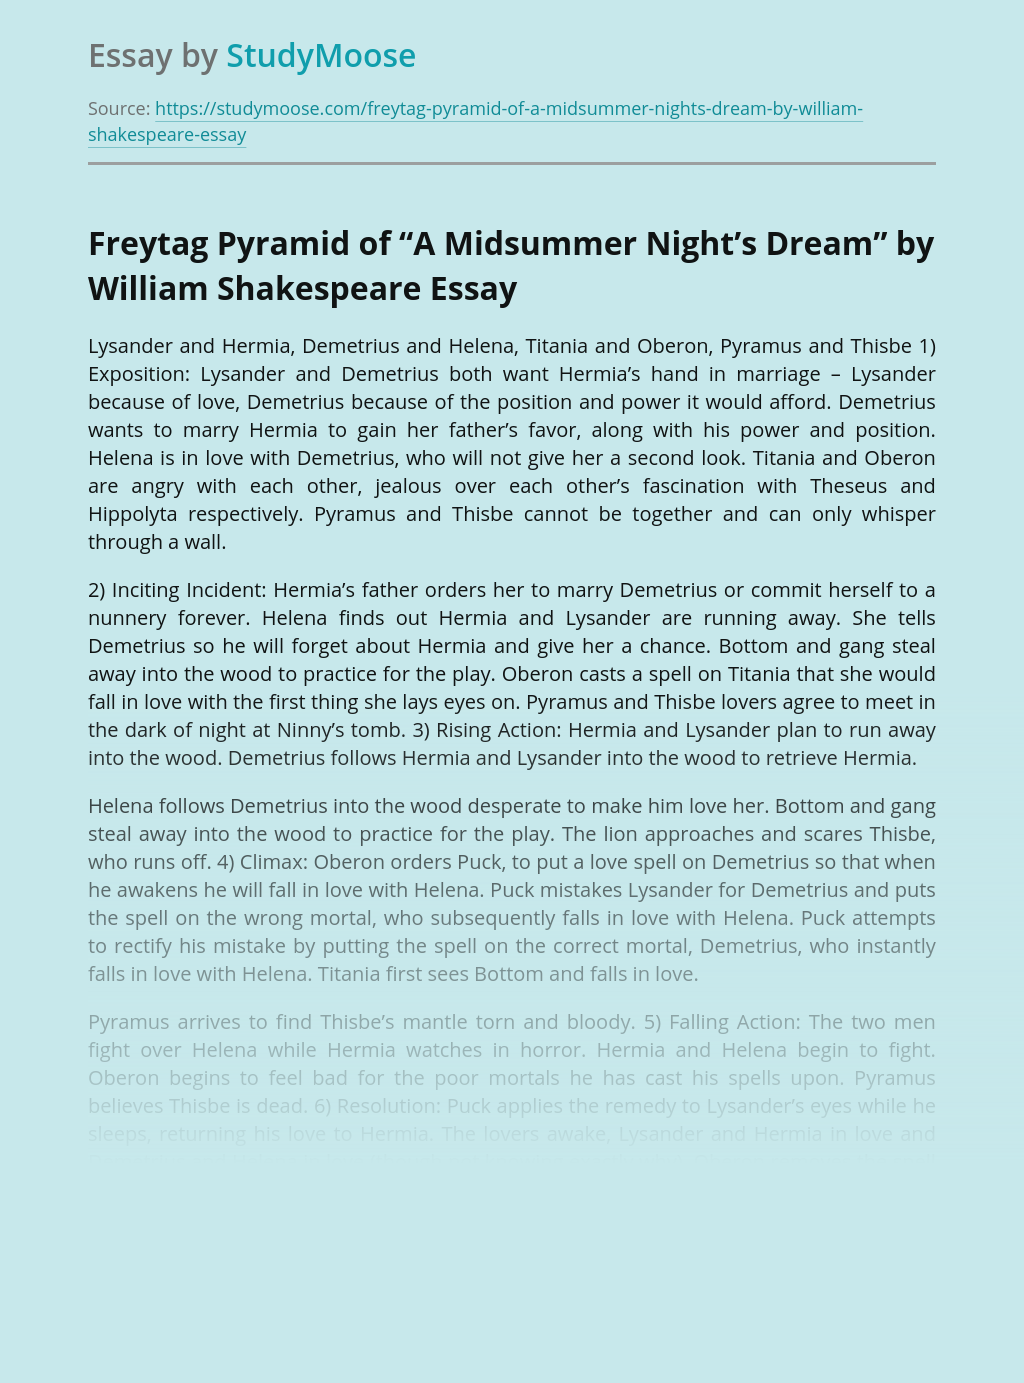 """Freytag Pyramid of """"A Midsummer Night's Dream"""" by William Shakespeare"""